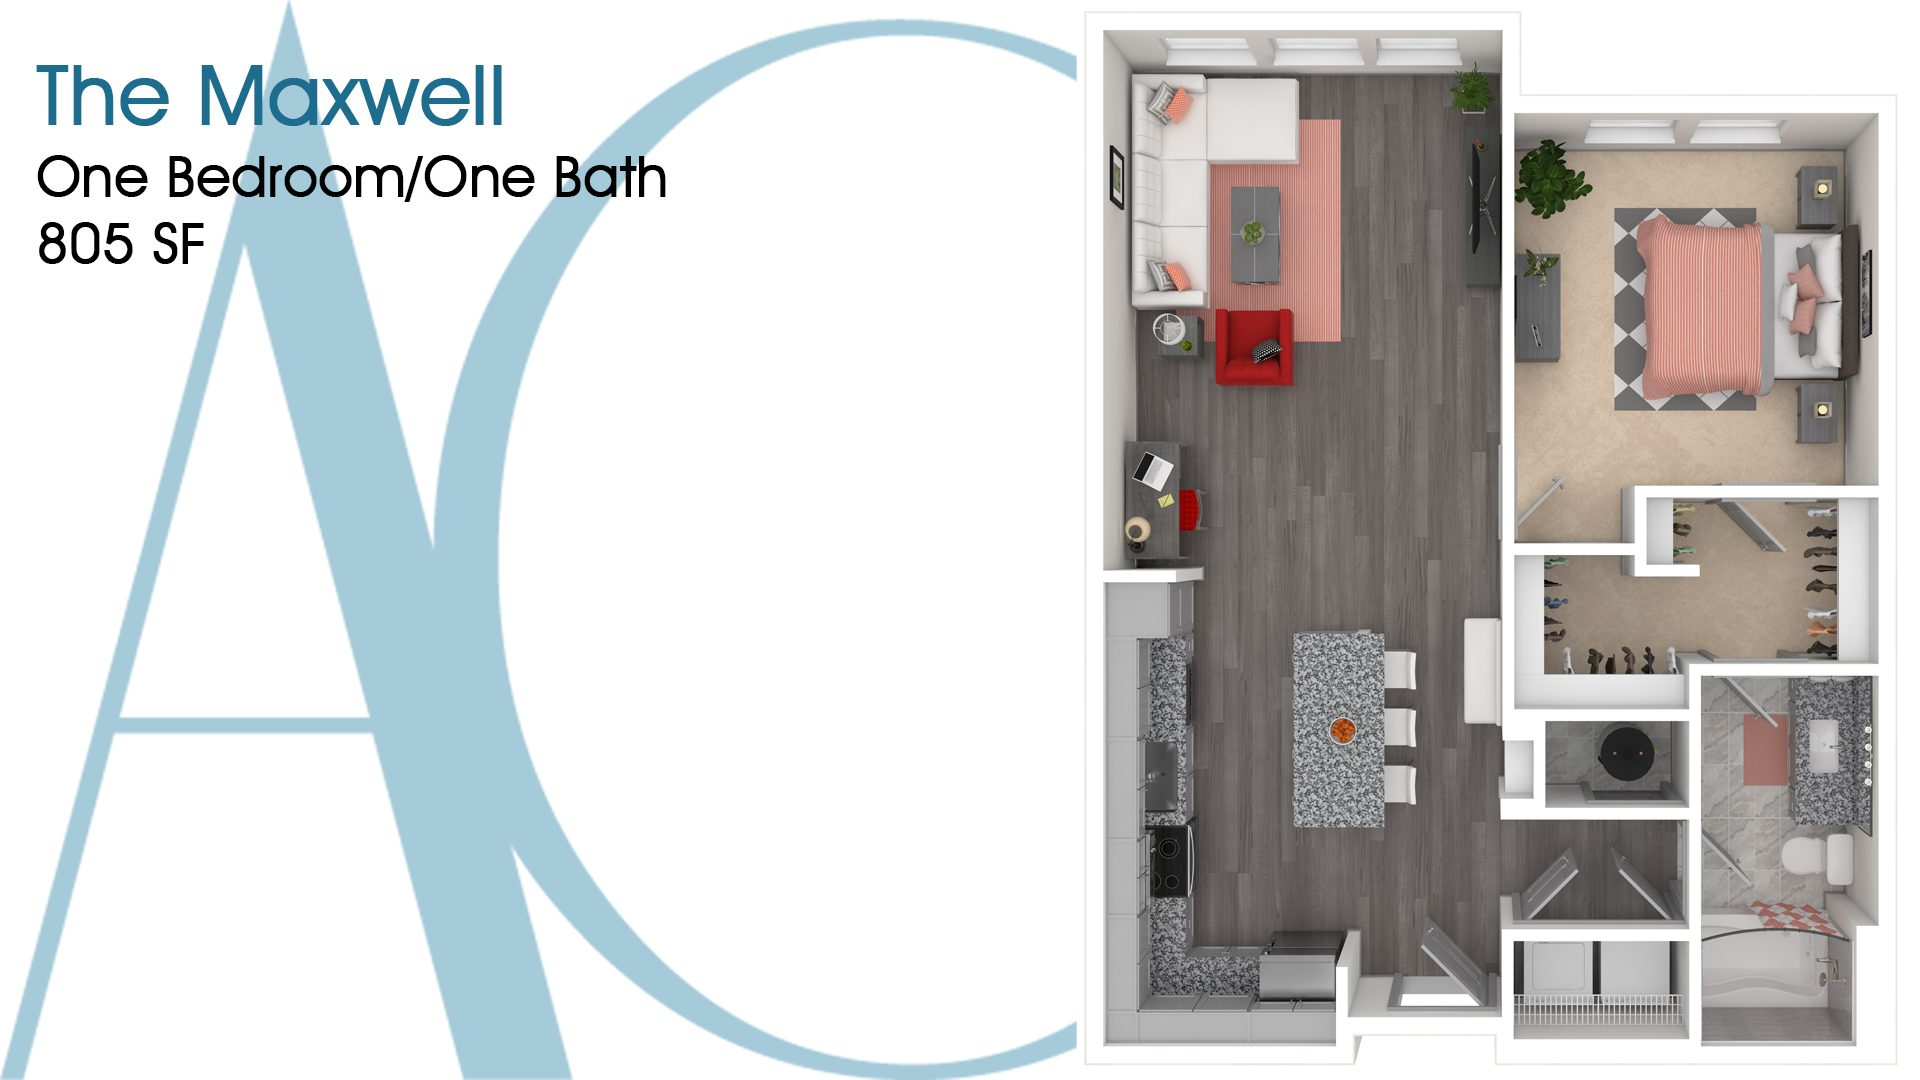 The Maxwell—One-Bedroom/One-Bath Apartment—805 SQ. FT.